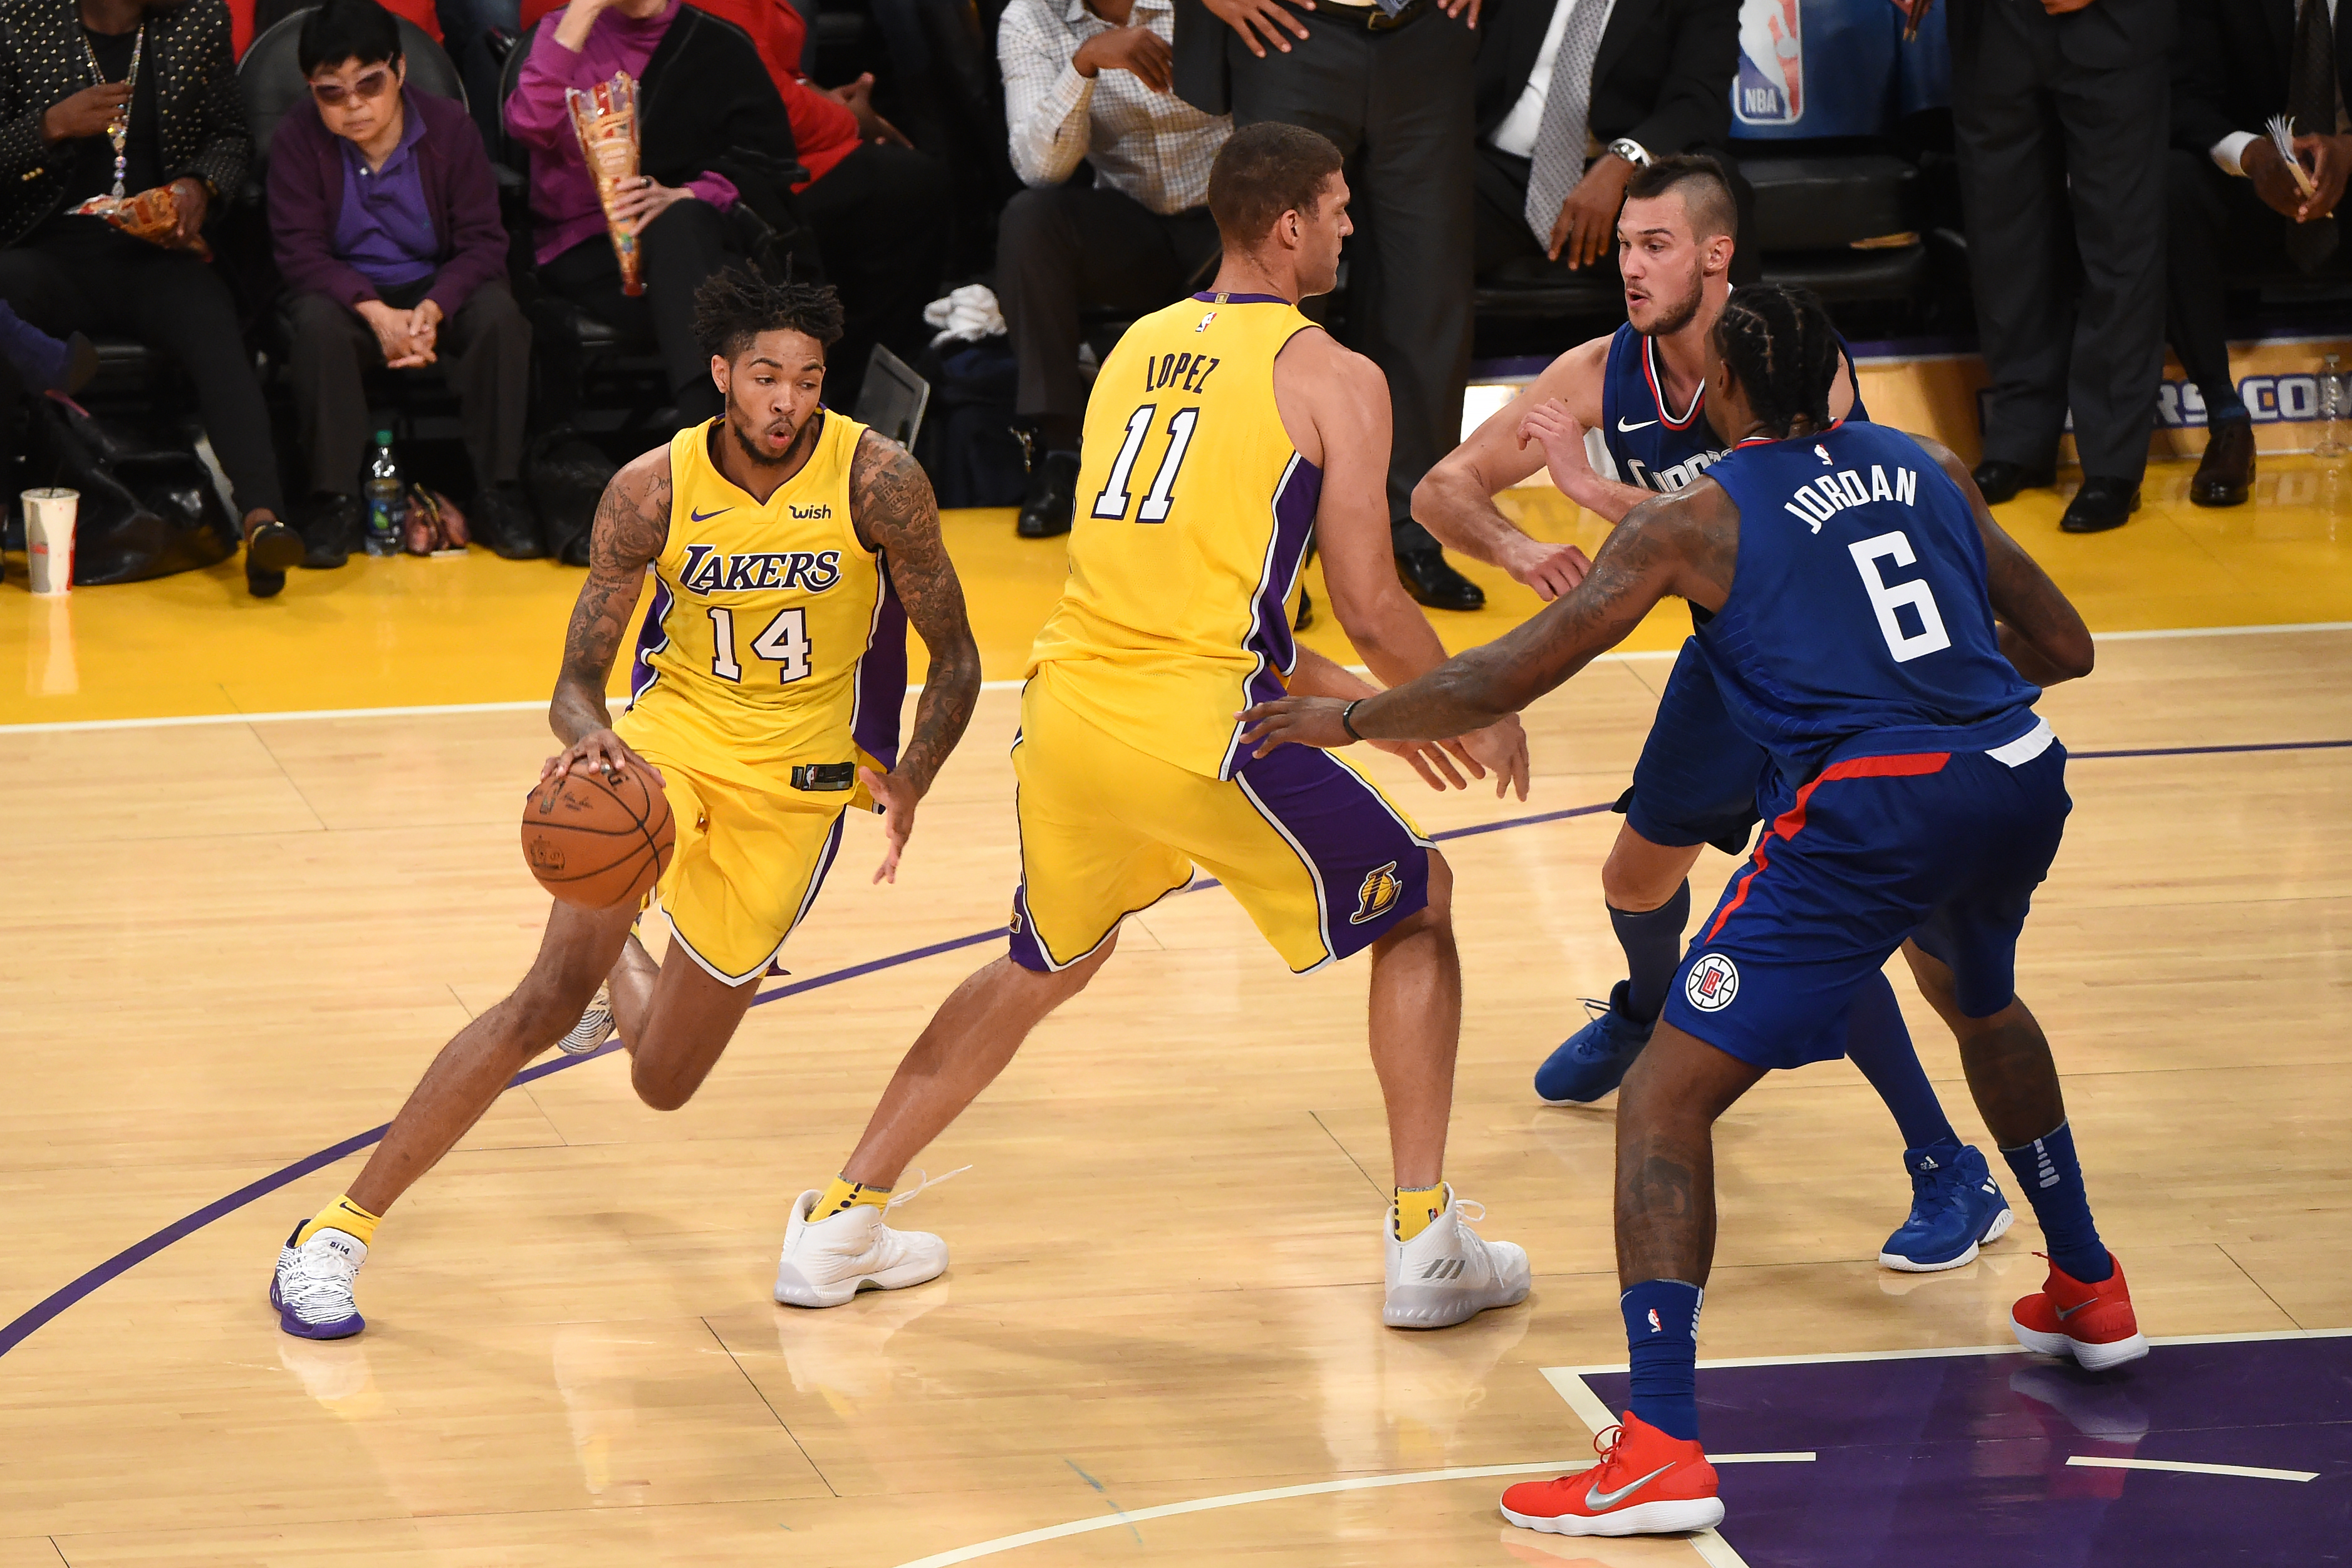 Los Angeles Lakers vs Los Angeles Clippers: How to watch ...